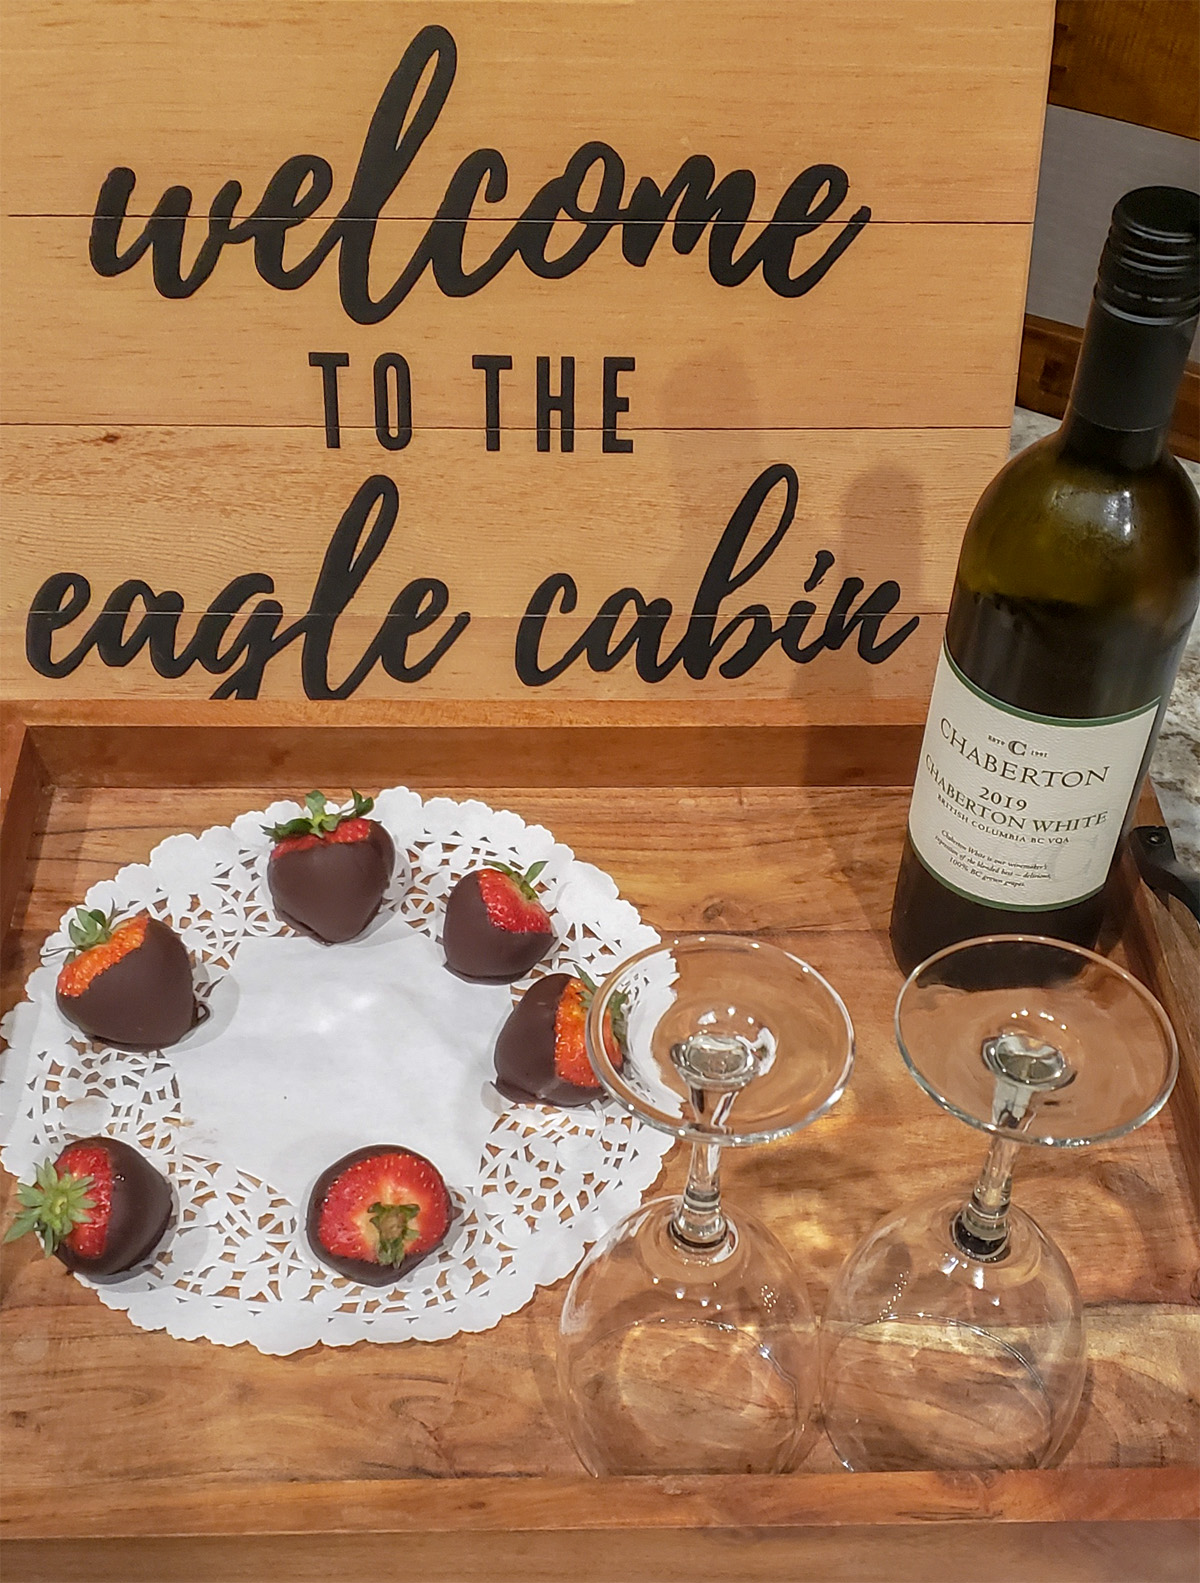 plate of chocolate dipped strawberries, Eagle cabin welcome sign and wine and wine glasses